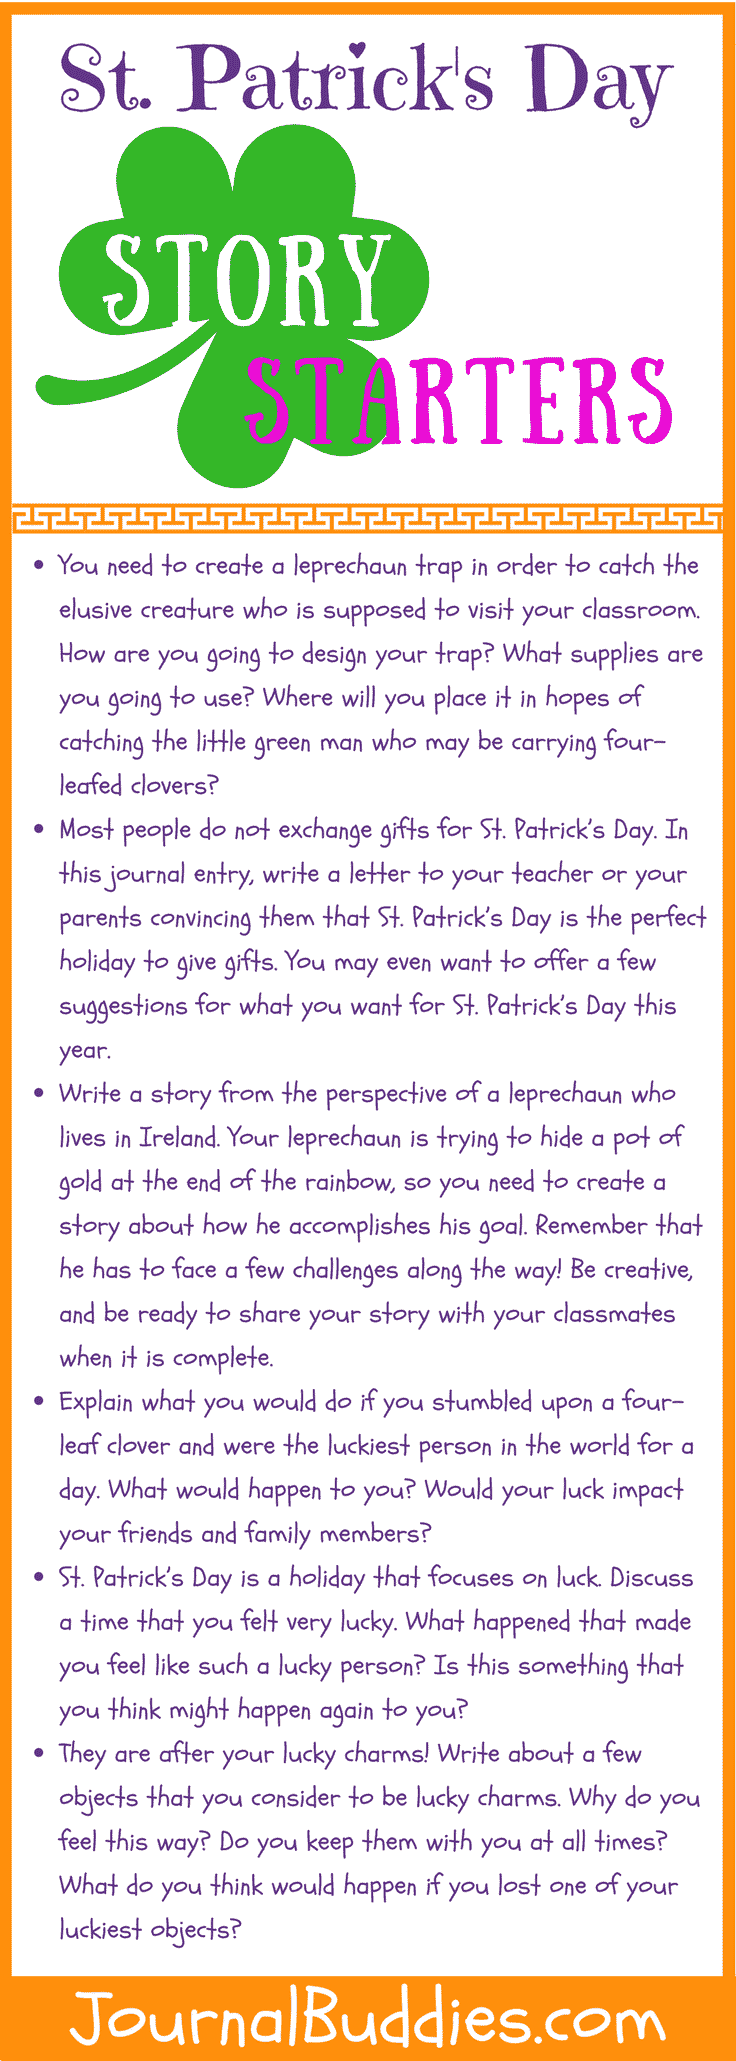 See this and come on over and take a peek and discover some fabulous and fun St Patrick's Day story starters & writing prompts for Kids!